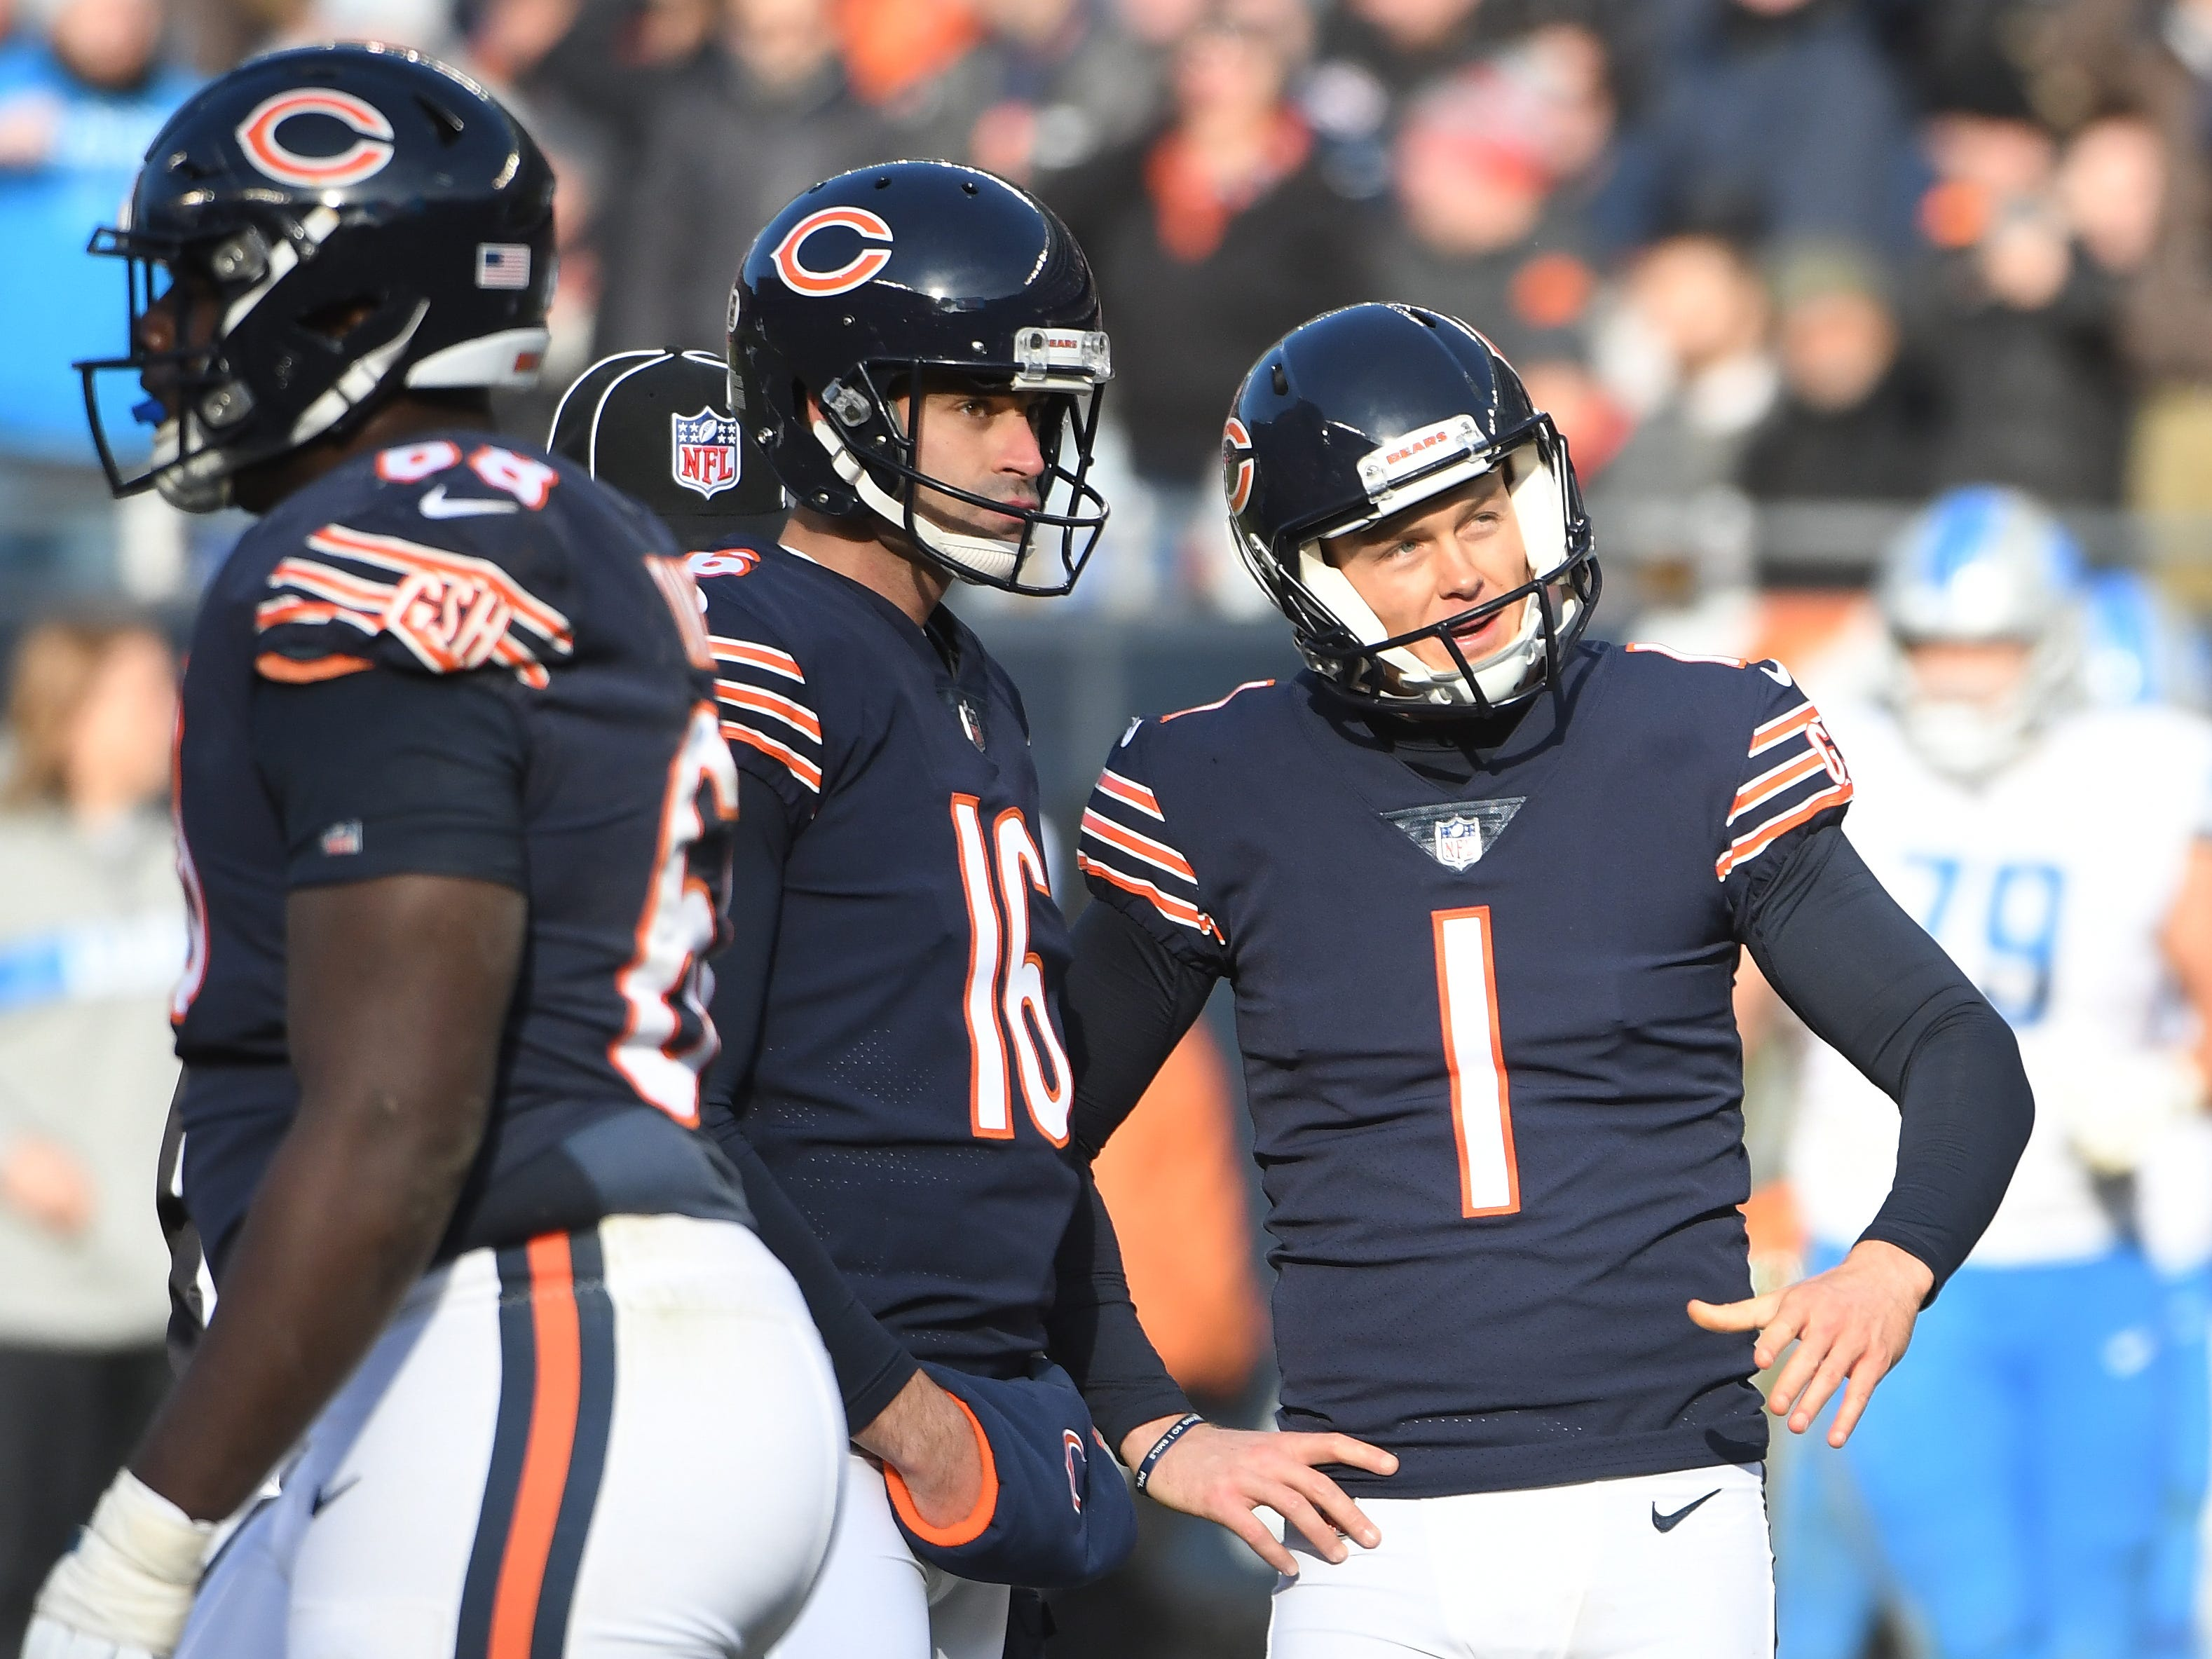 Bears kicker Cody Parkey bangs another kick off the upright for no points in the third quarter.